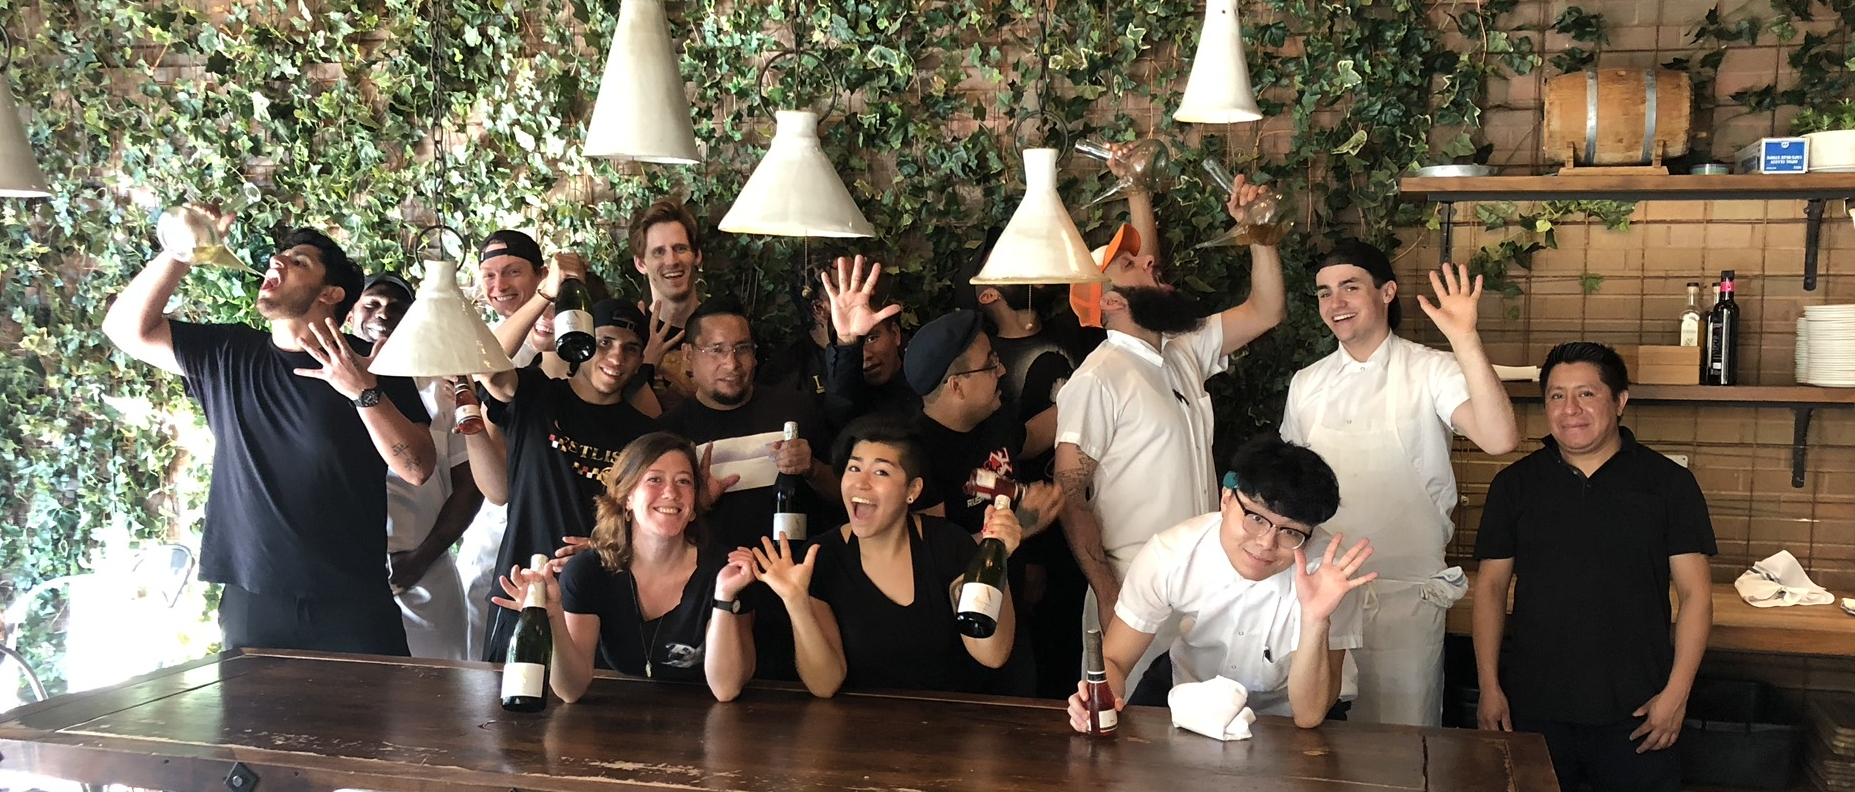 Team Toro NYC can't wait to celebrate!